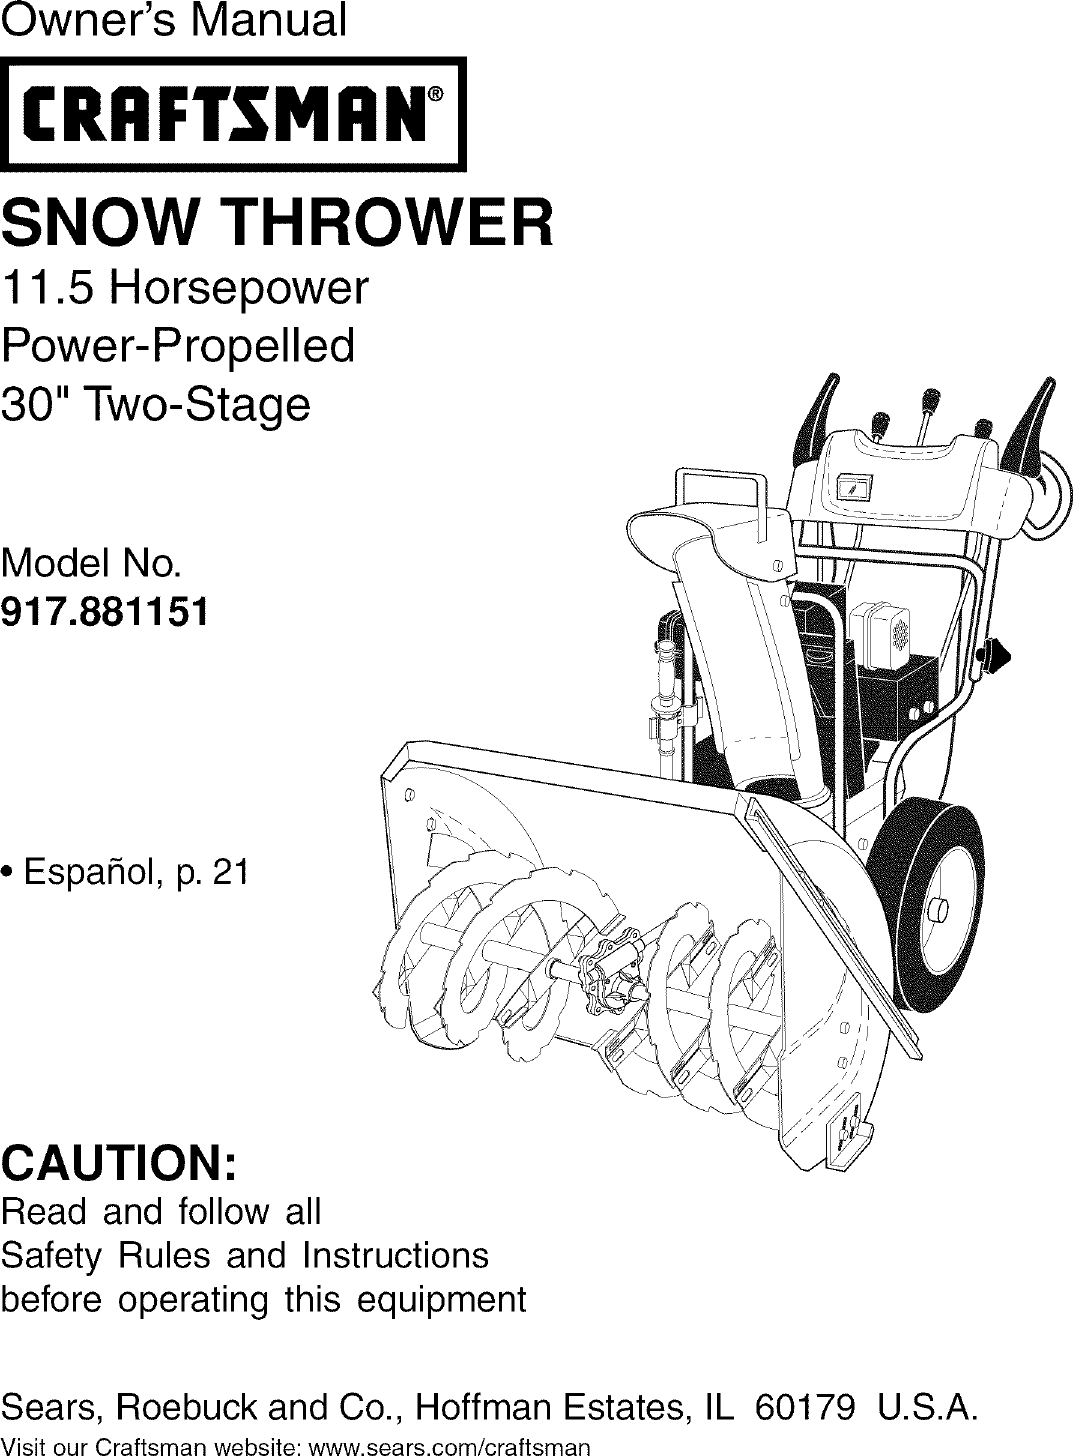 Craftsman 917881151 User Manual SNOW THROWER Manuals And